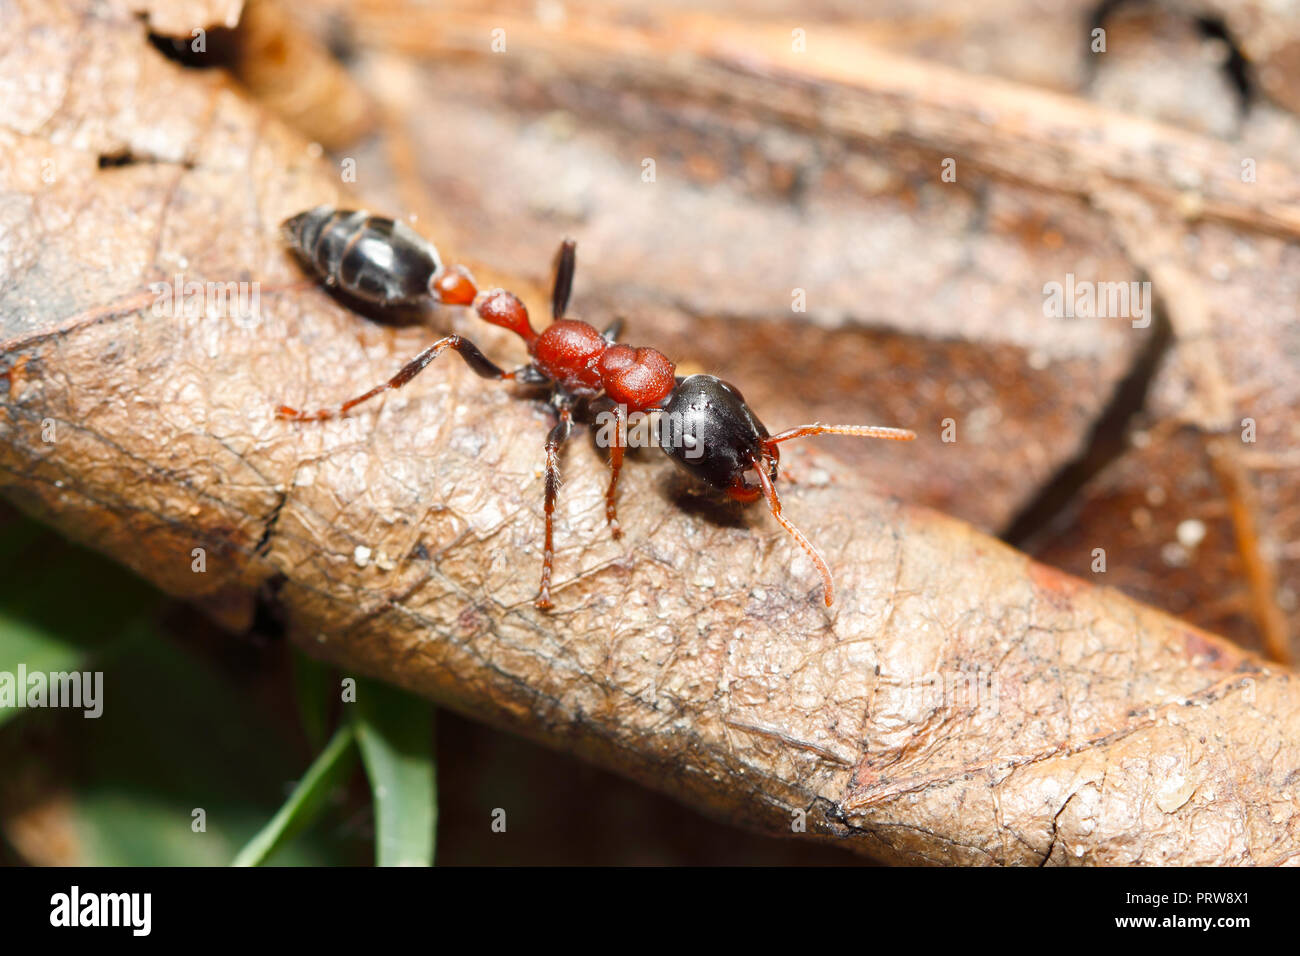 Bi-coloured arboreal ant (Tetraponera rufonigra) : ant that have painful sting can cause allergic reactions and dead in human by anaphylactic shock - Stock Image